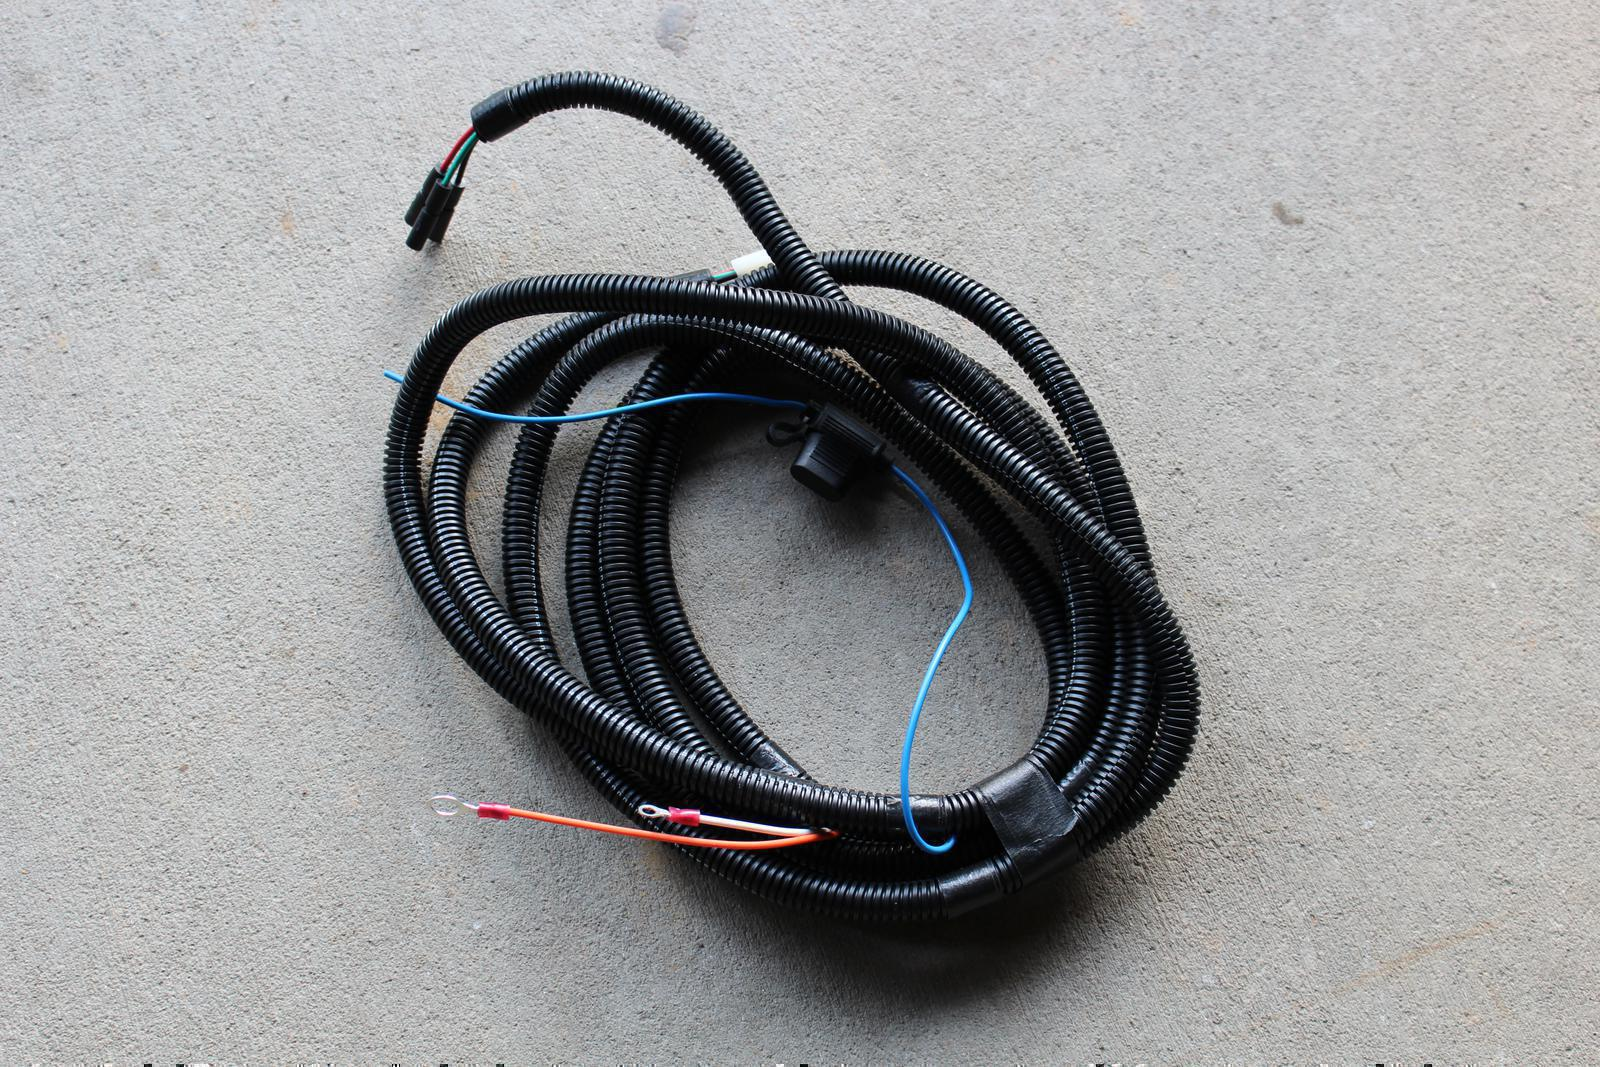 Meyer Wiring Harness Electrical Diagrams Myers Diagram 15764 Oem Touch Pad For Sale In New Windsor Md Plow